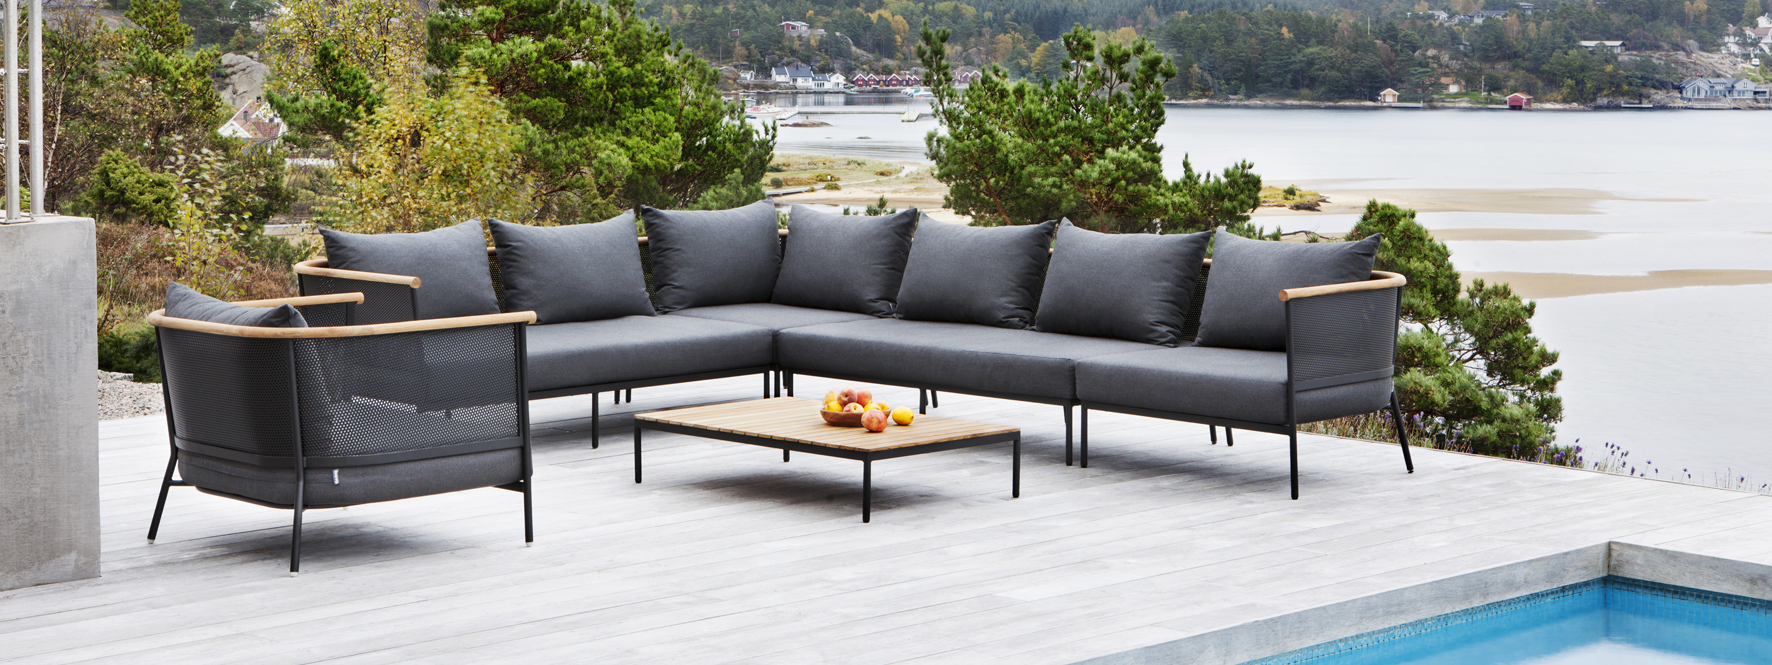 RIAD Outdoor Sectional Sofa from Oasiq